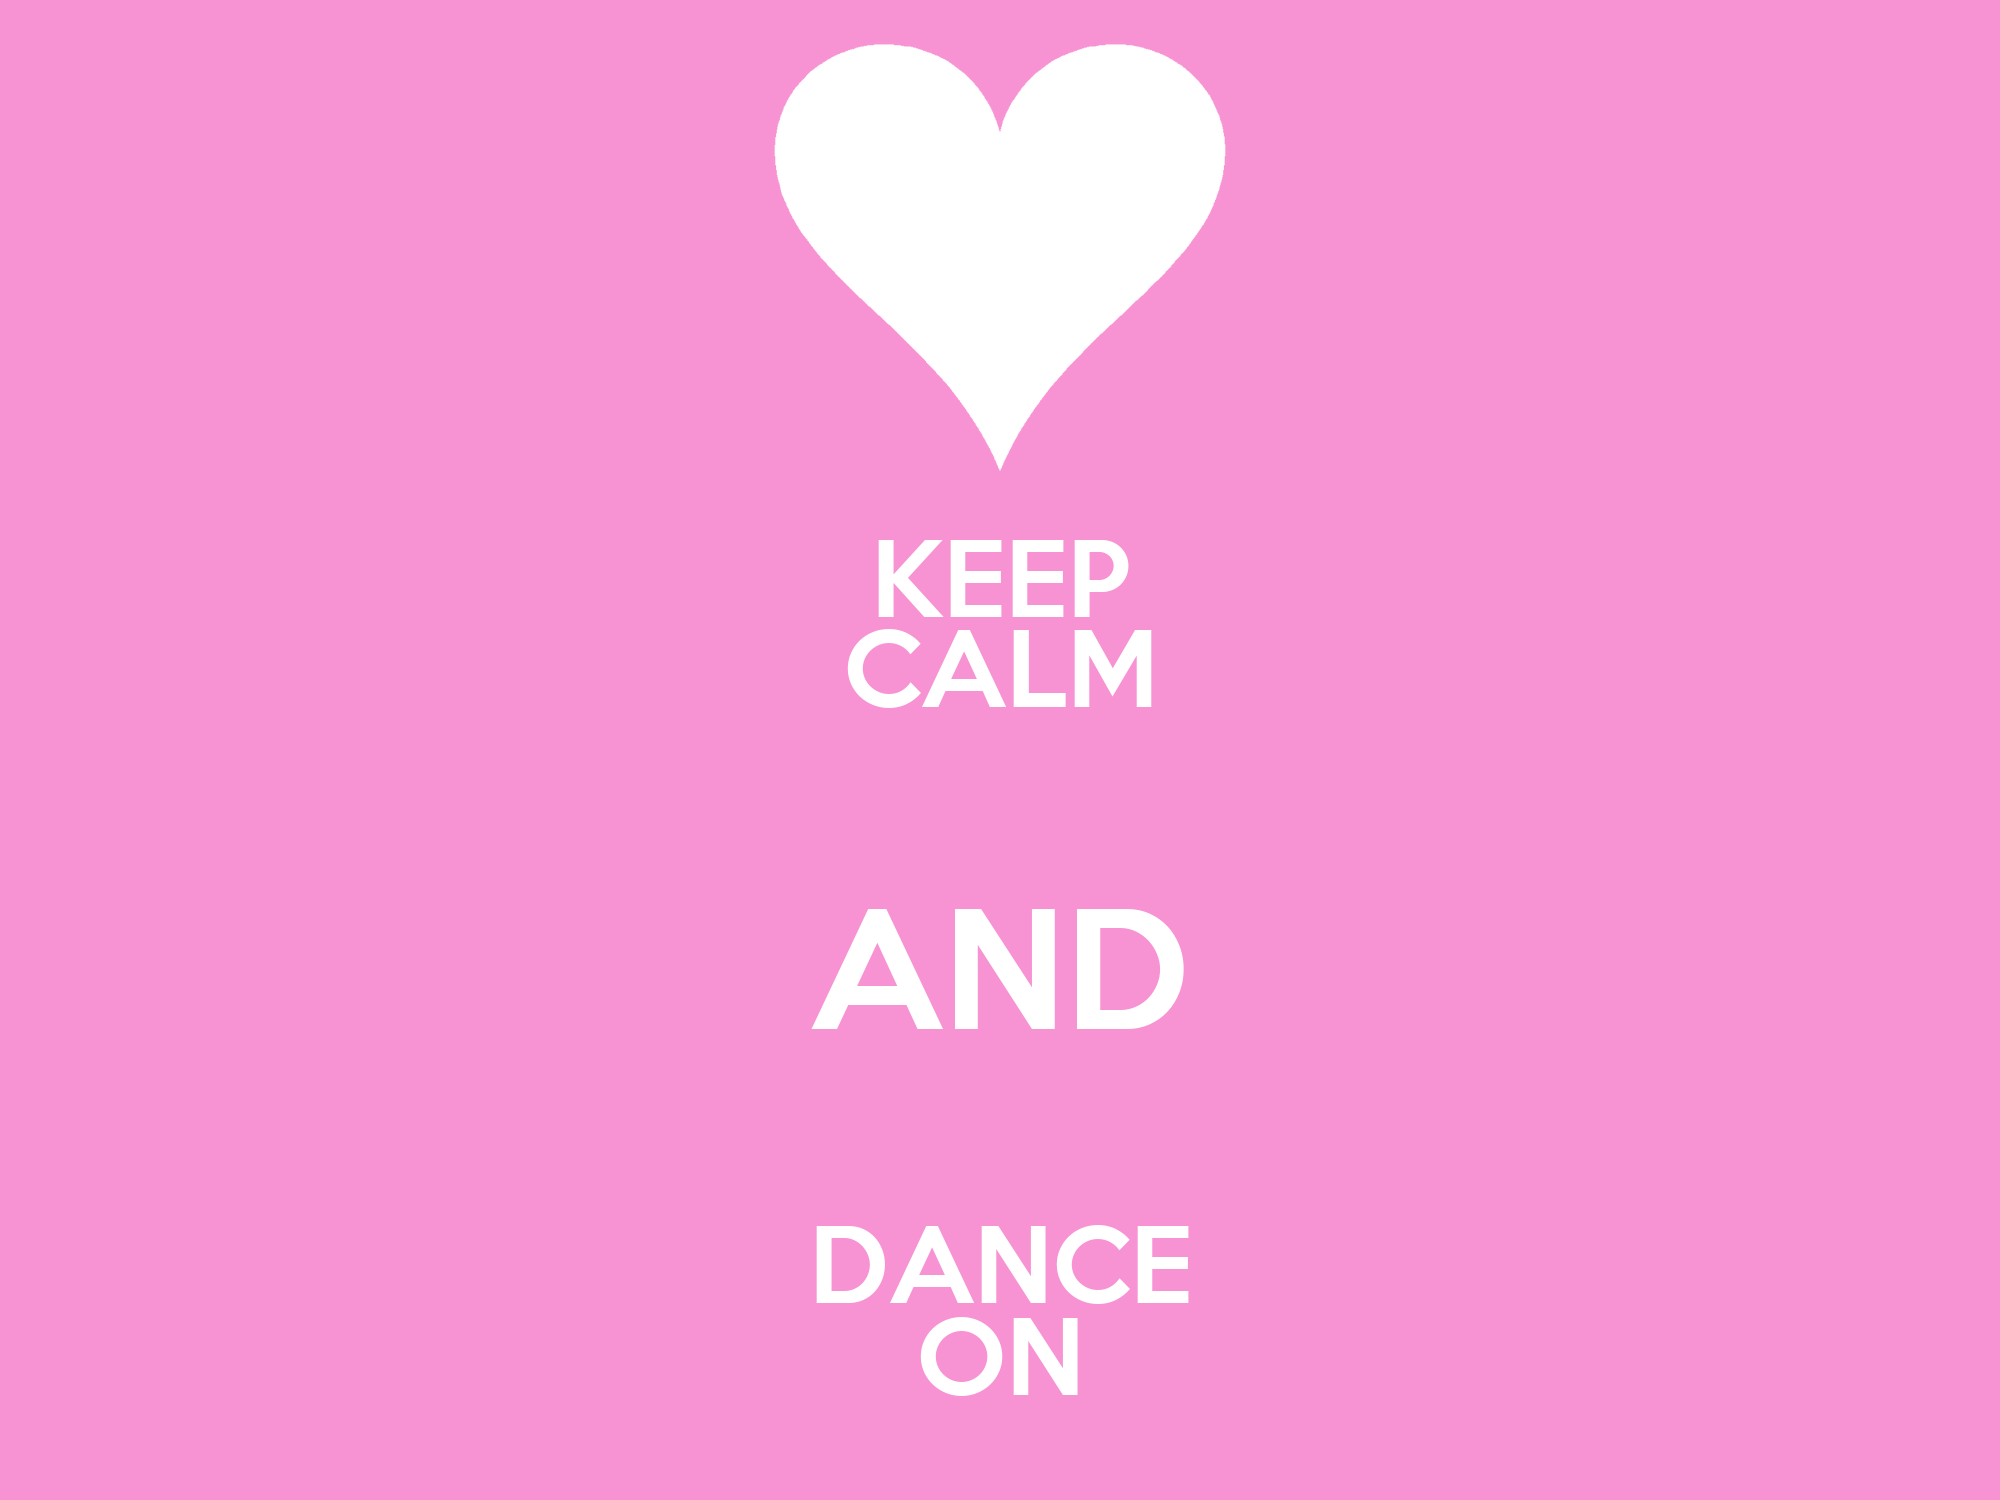 KEEP CALM AND DANCE ON Poster | Holly | Keep Calm-o-Matic